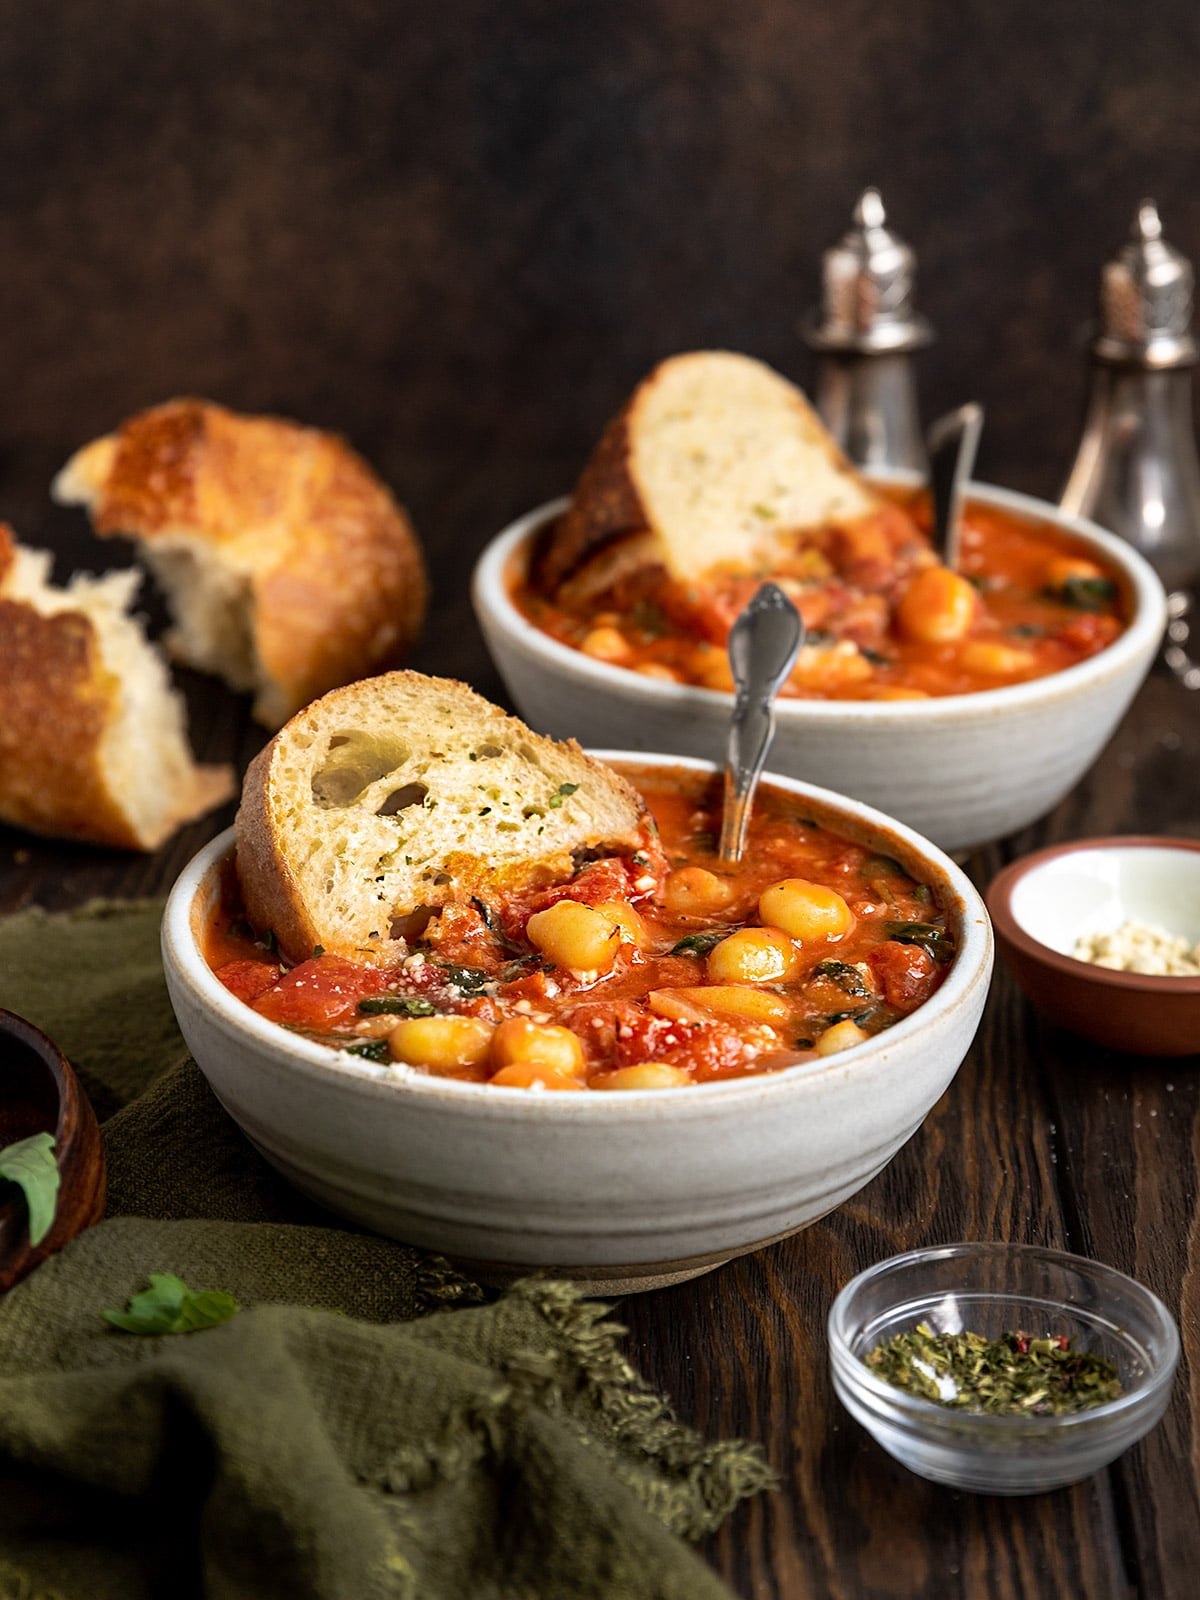 two bowls of tomato gnocchi soup with slices of sourdough bread on a wood table